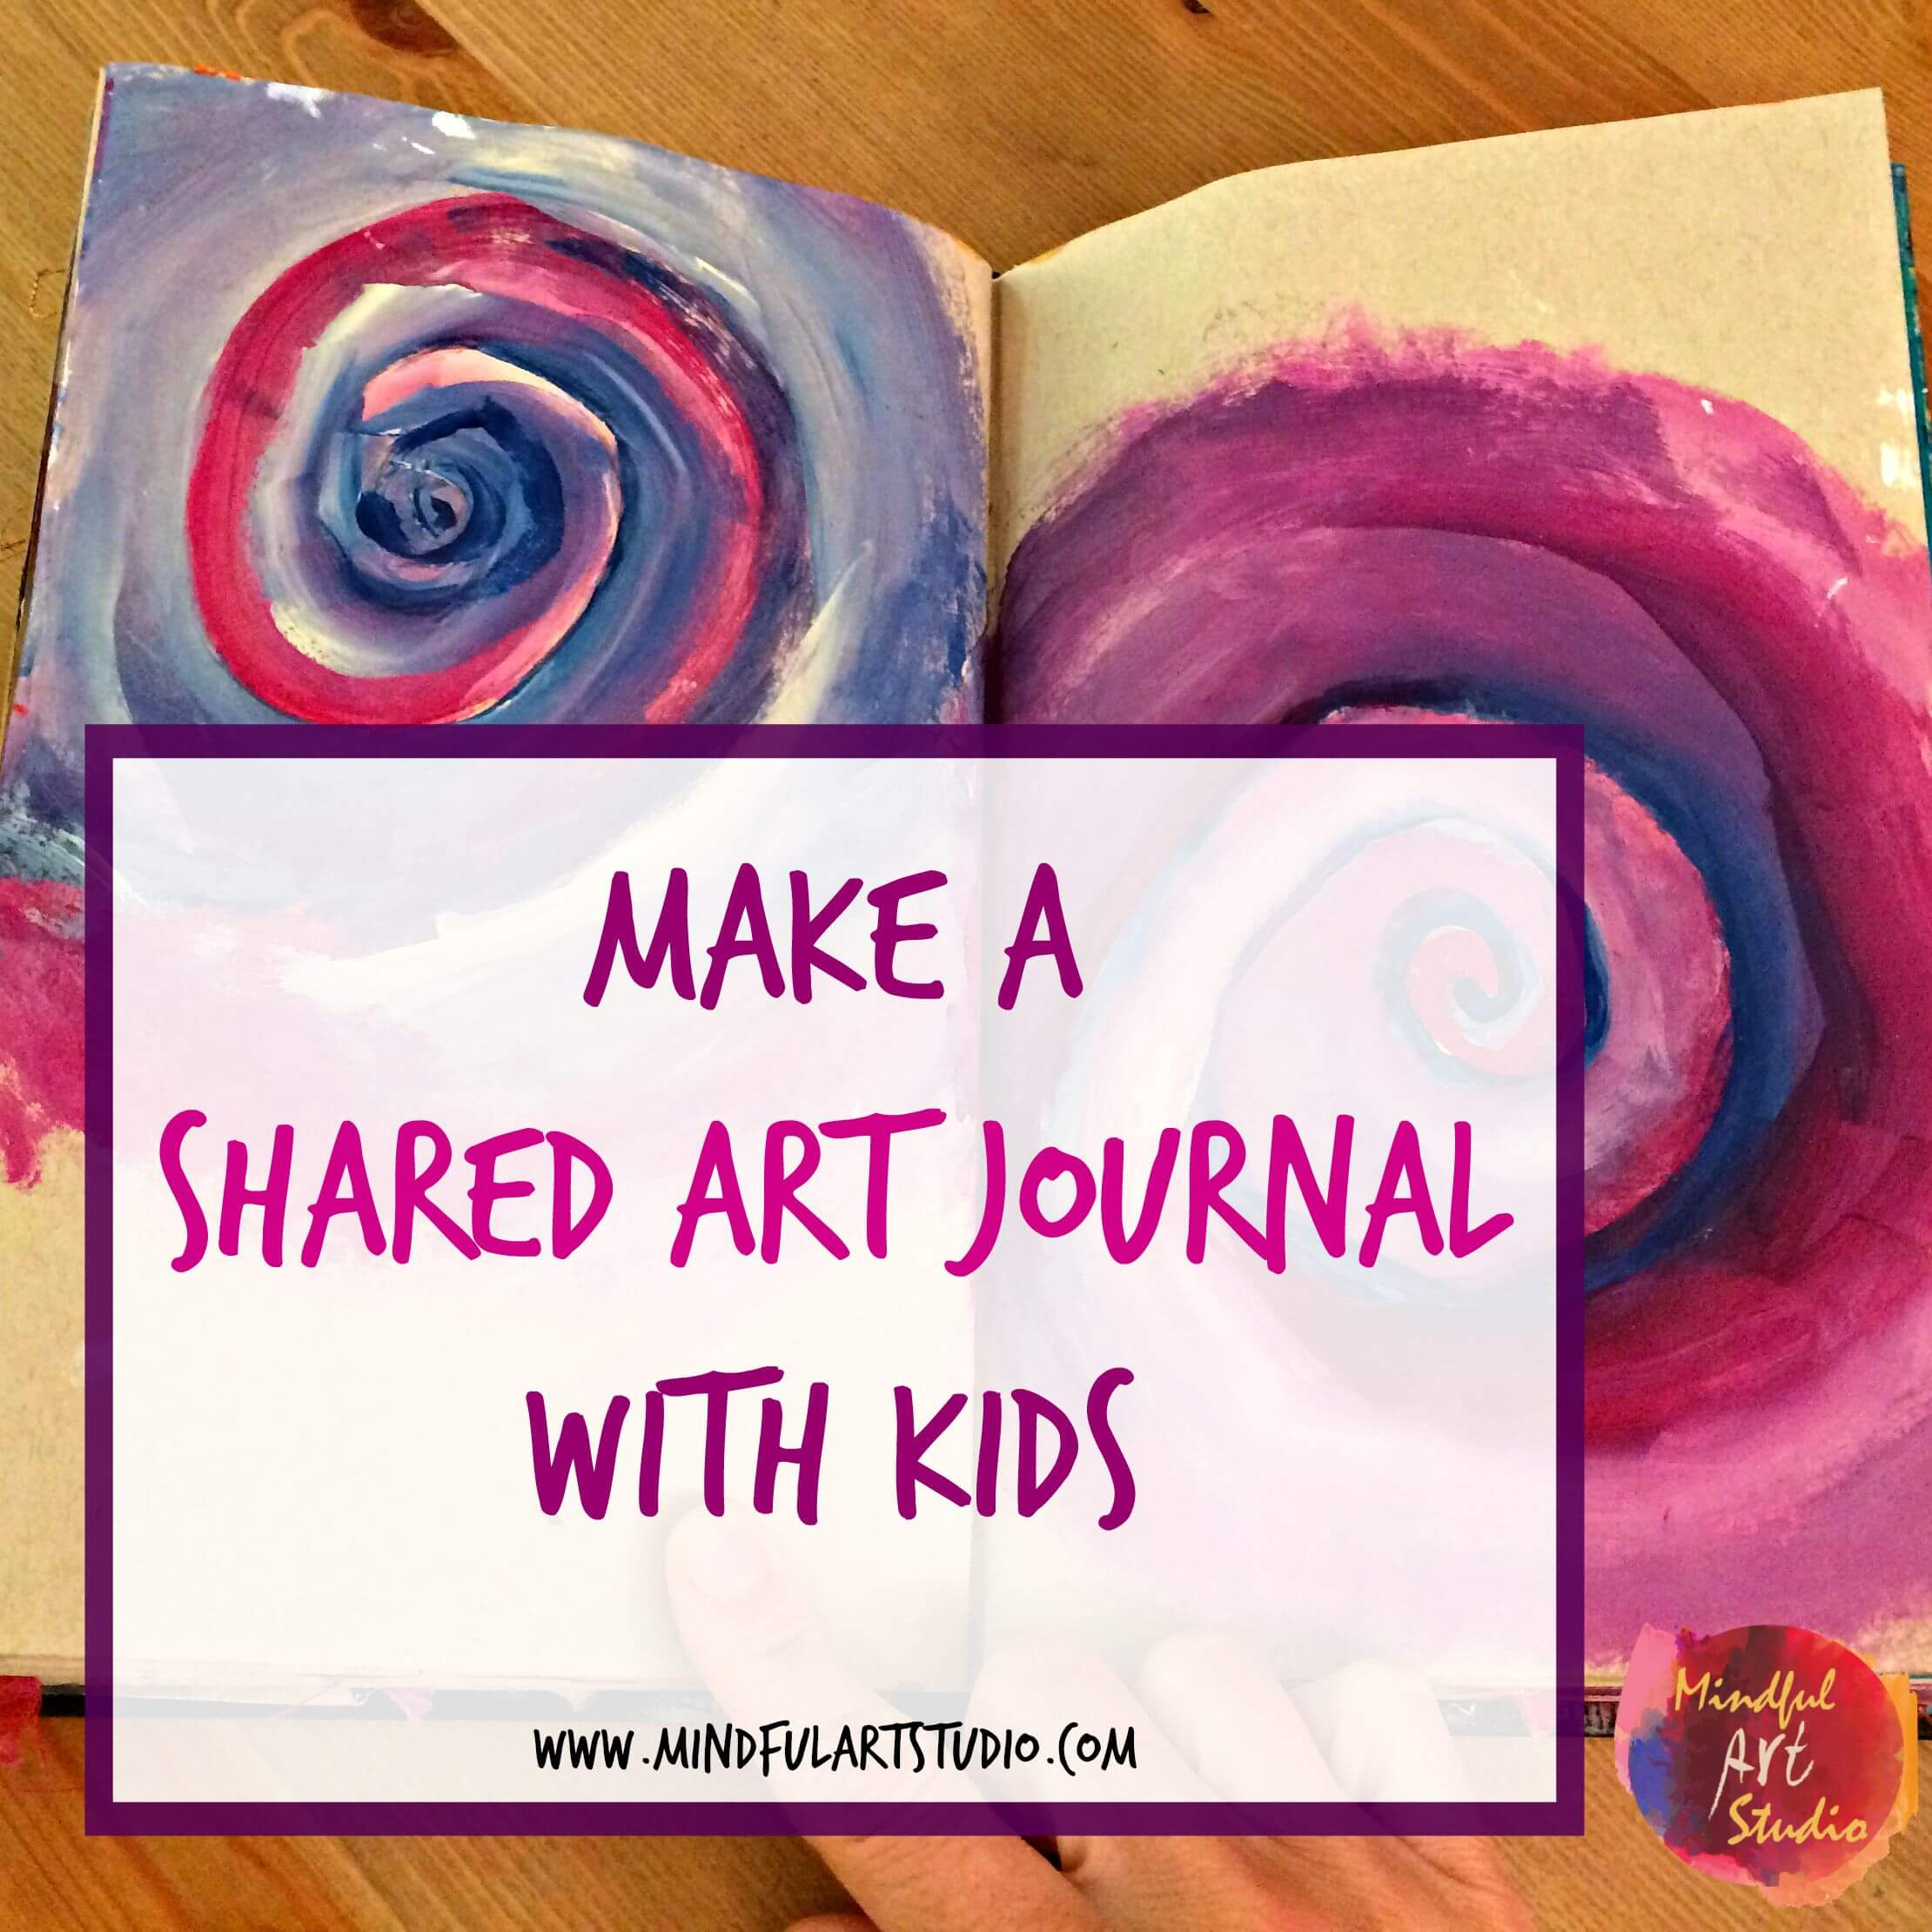 c516b732e6 Make-a-Shared-Art-Journal-with-Kids.jpg